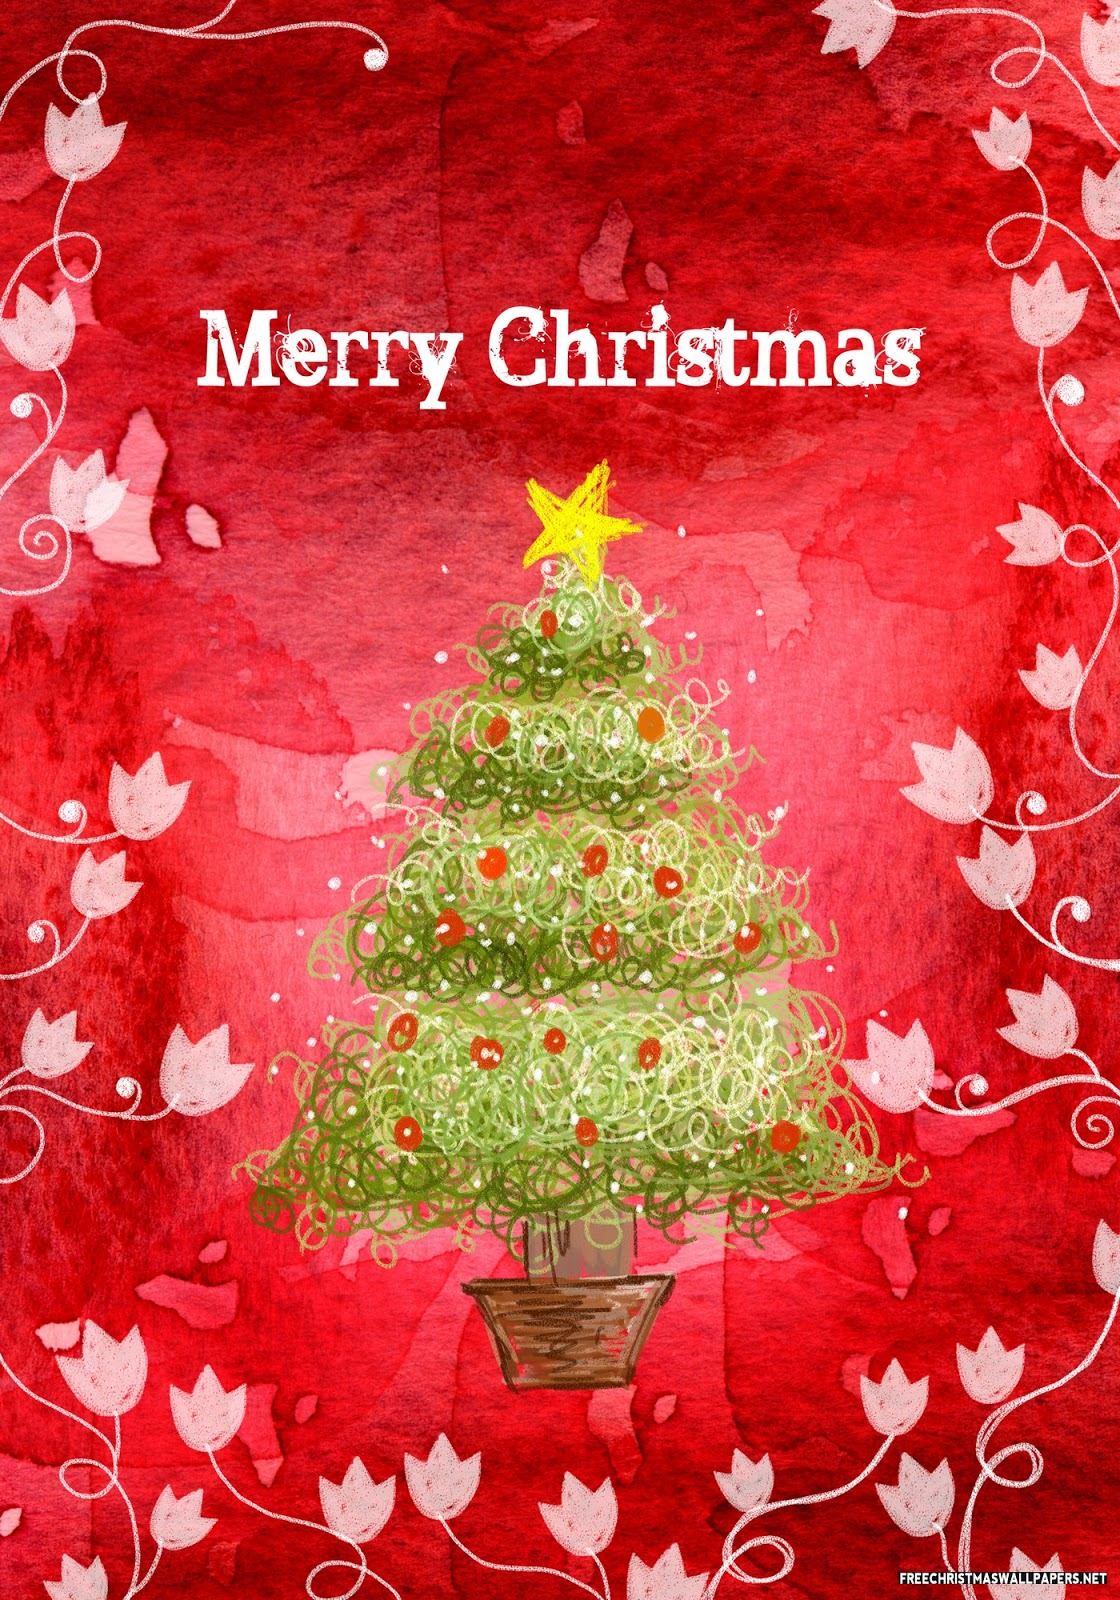 Important information christmas greetings cards christmas wishes so wish your love ones merry christmas in advance with online wallpapers stores christmas greeting cards m4hsunfo